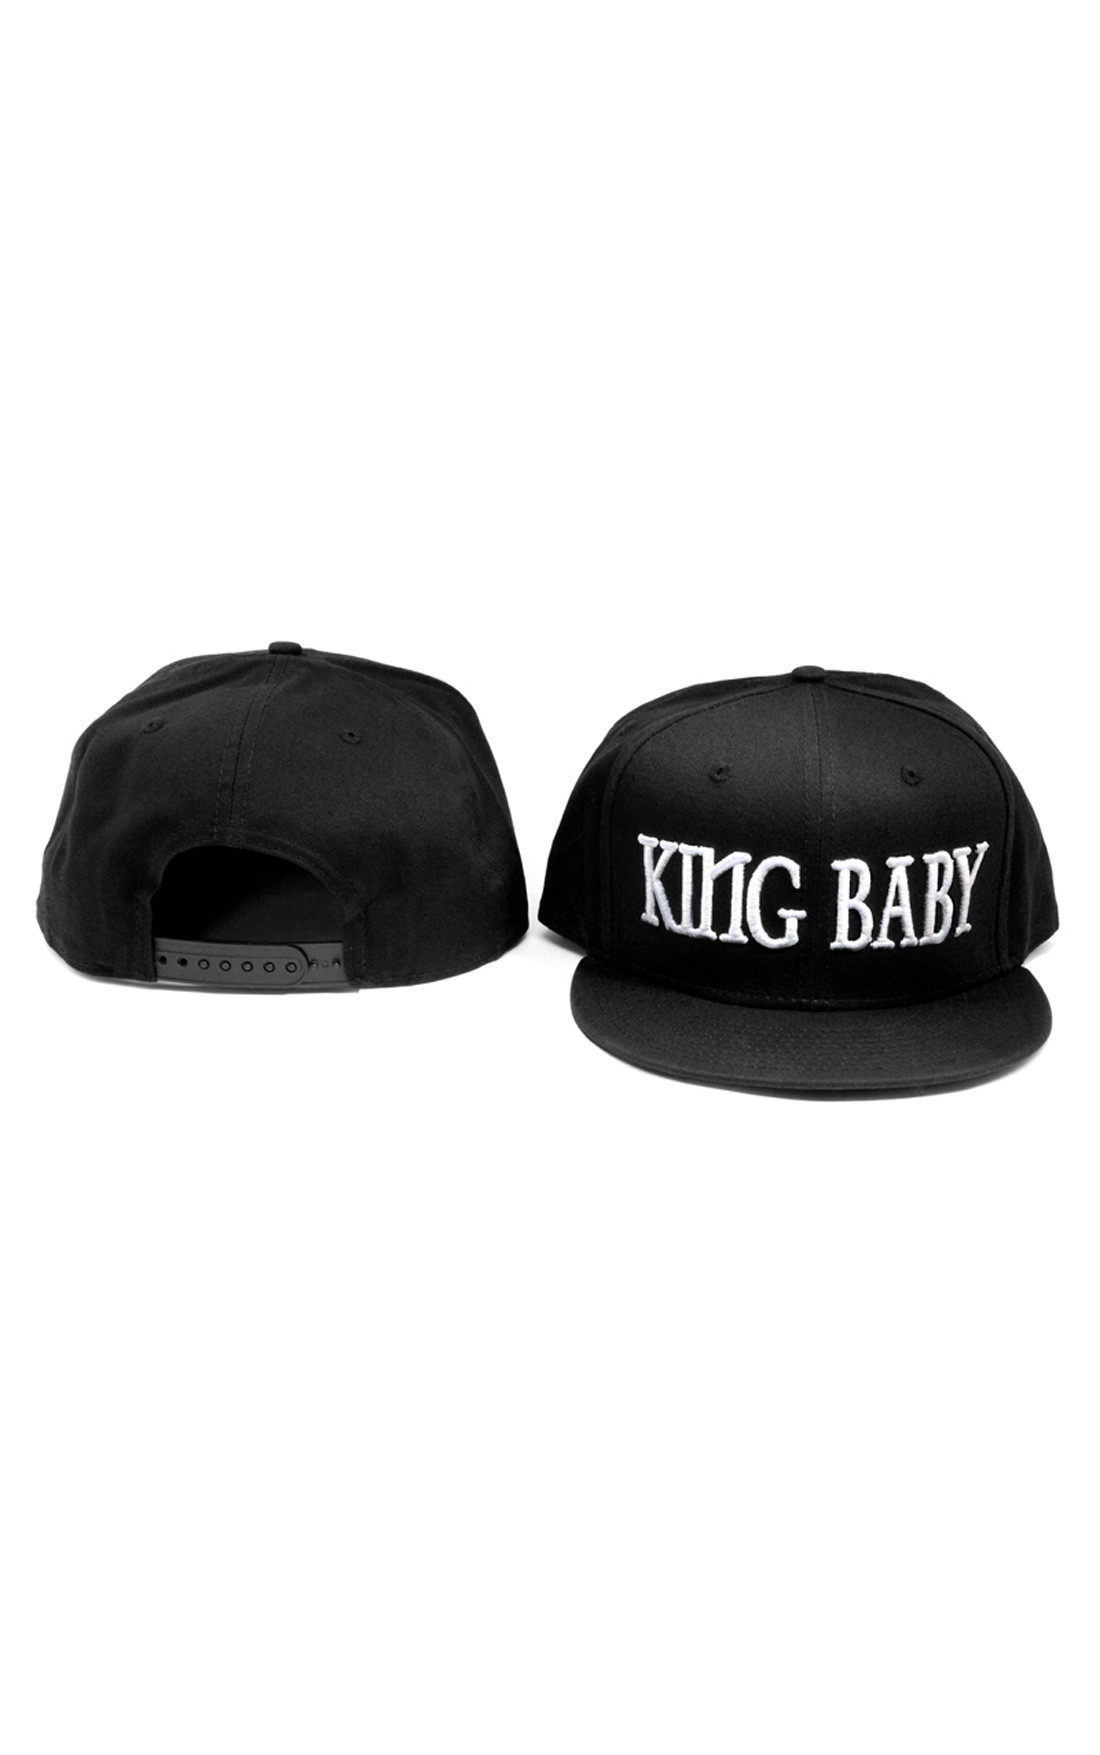 King Baby - King Baby Hat (A80-5021)